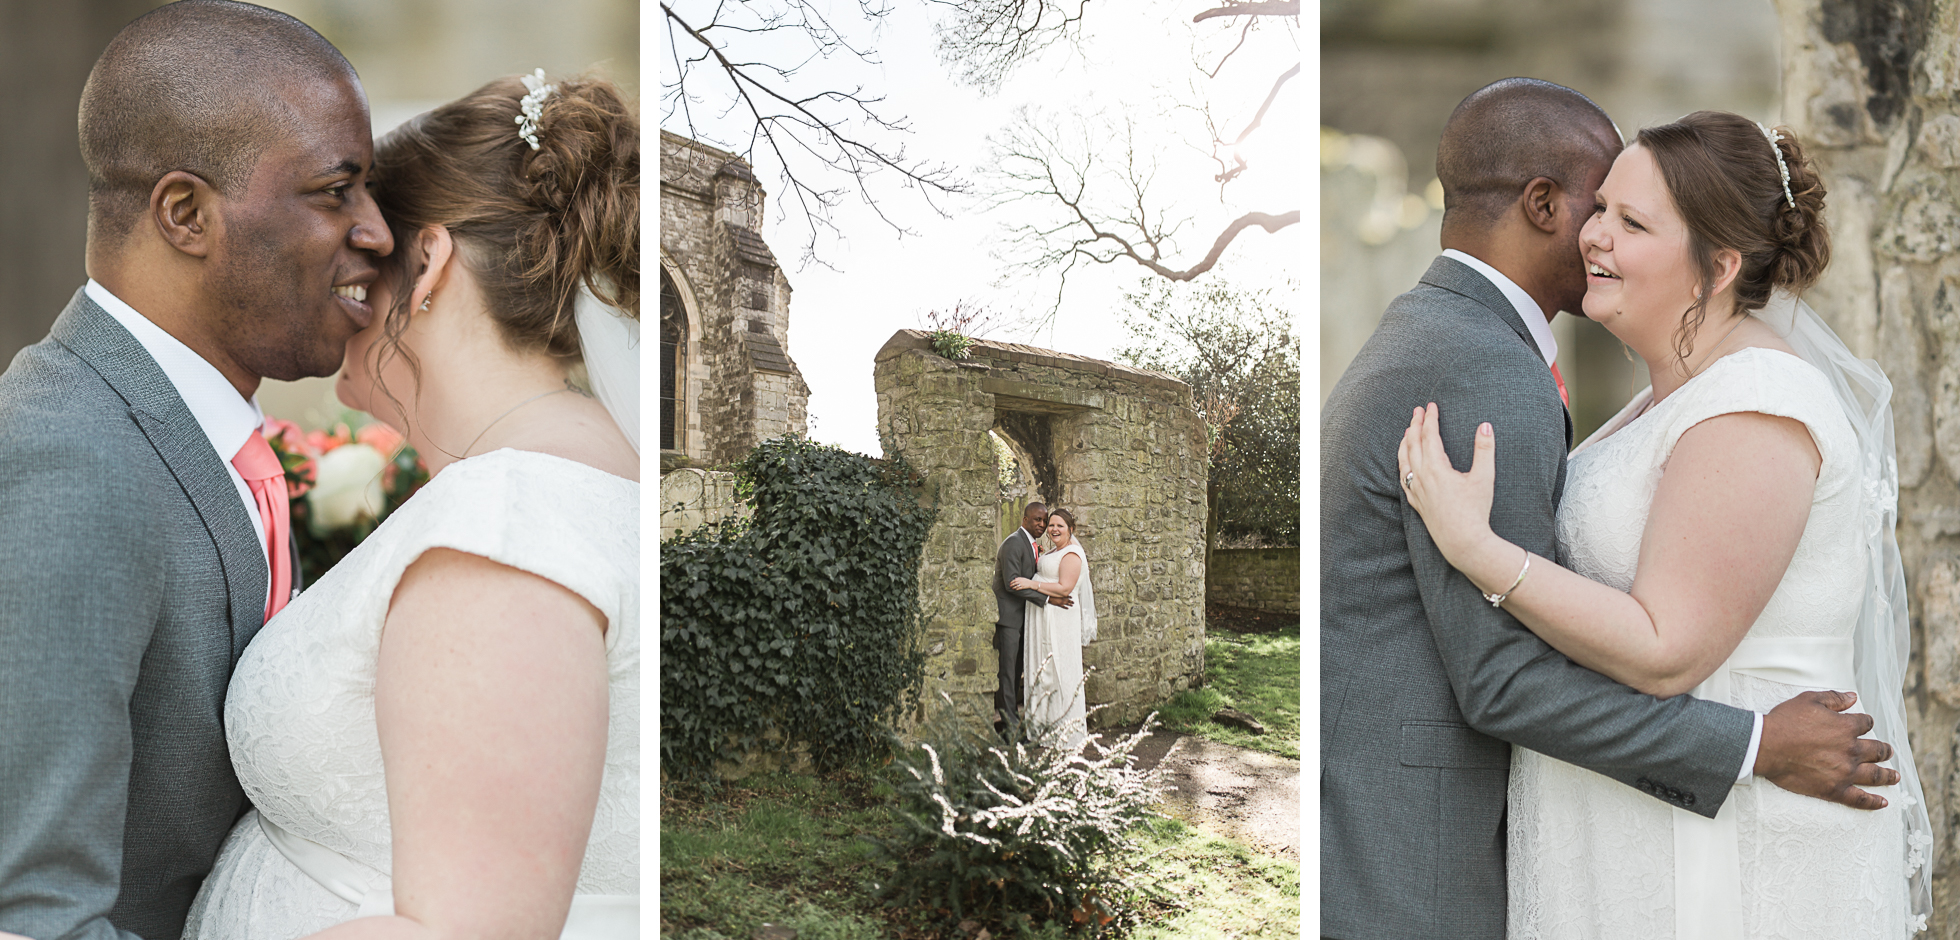 Small Intimate Wedding Kent Wedding Photography at Archbishops Palace, Maidstone